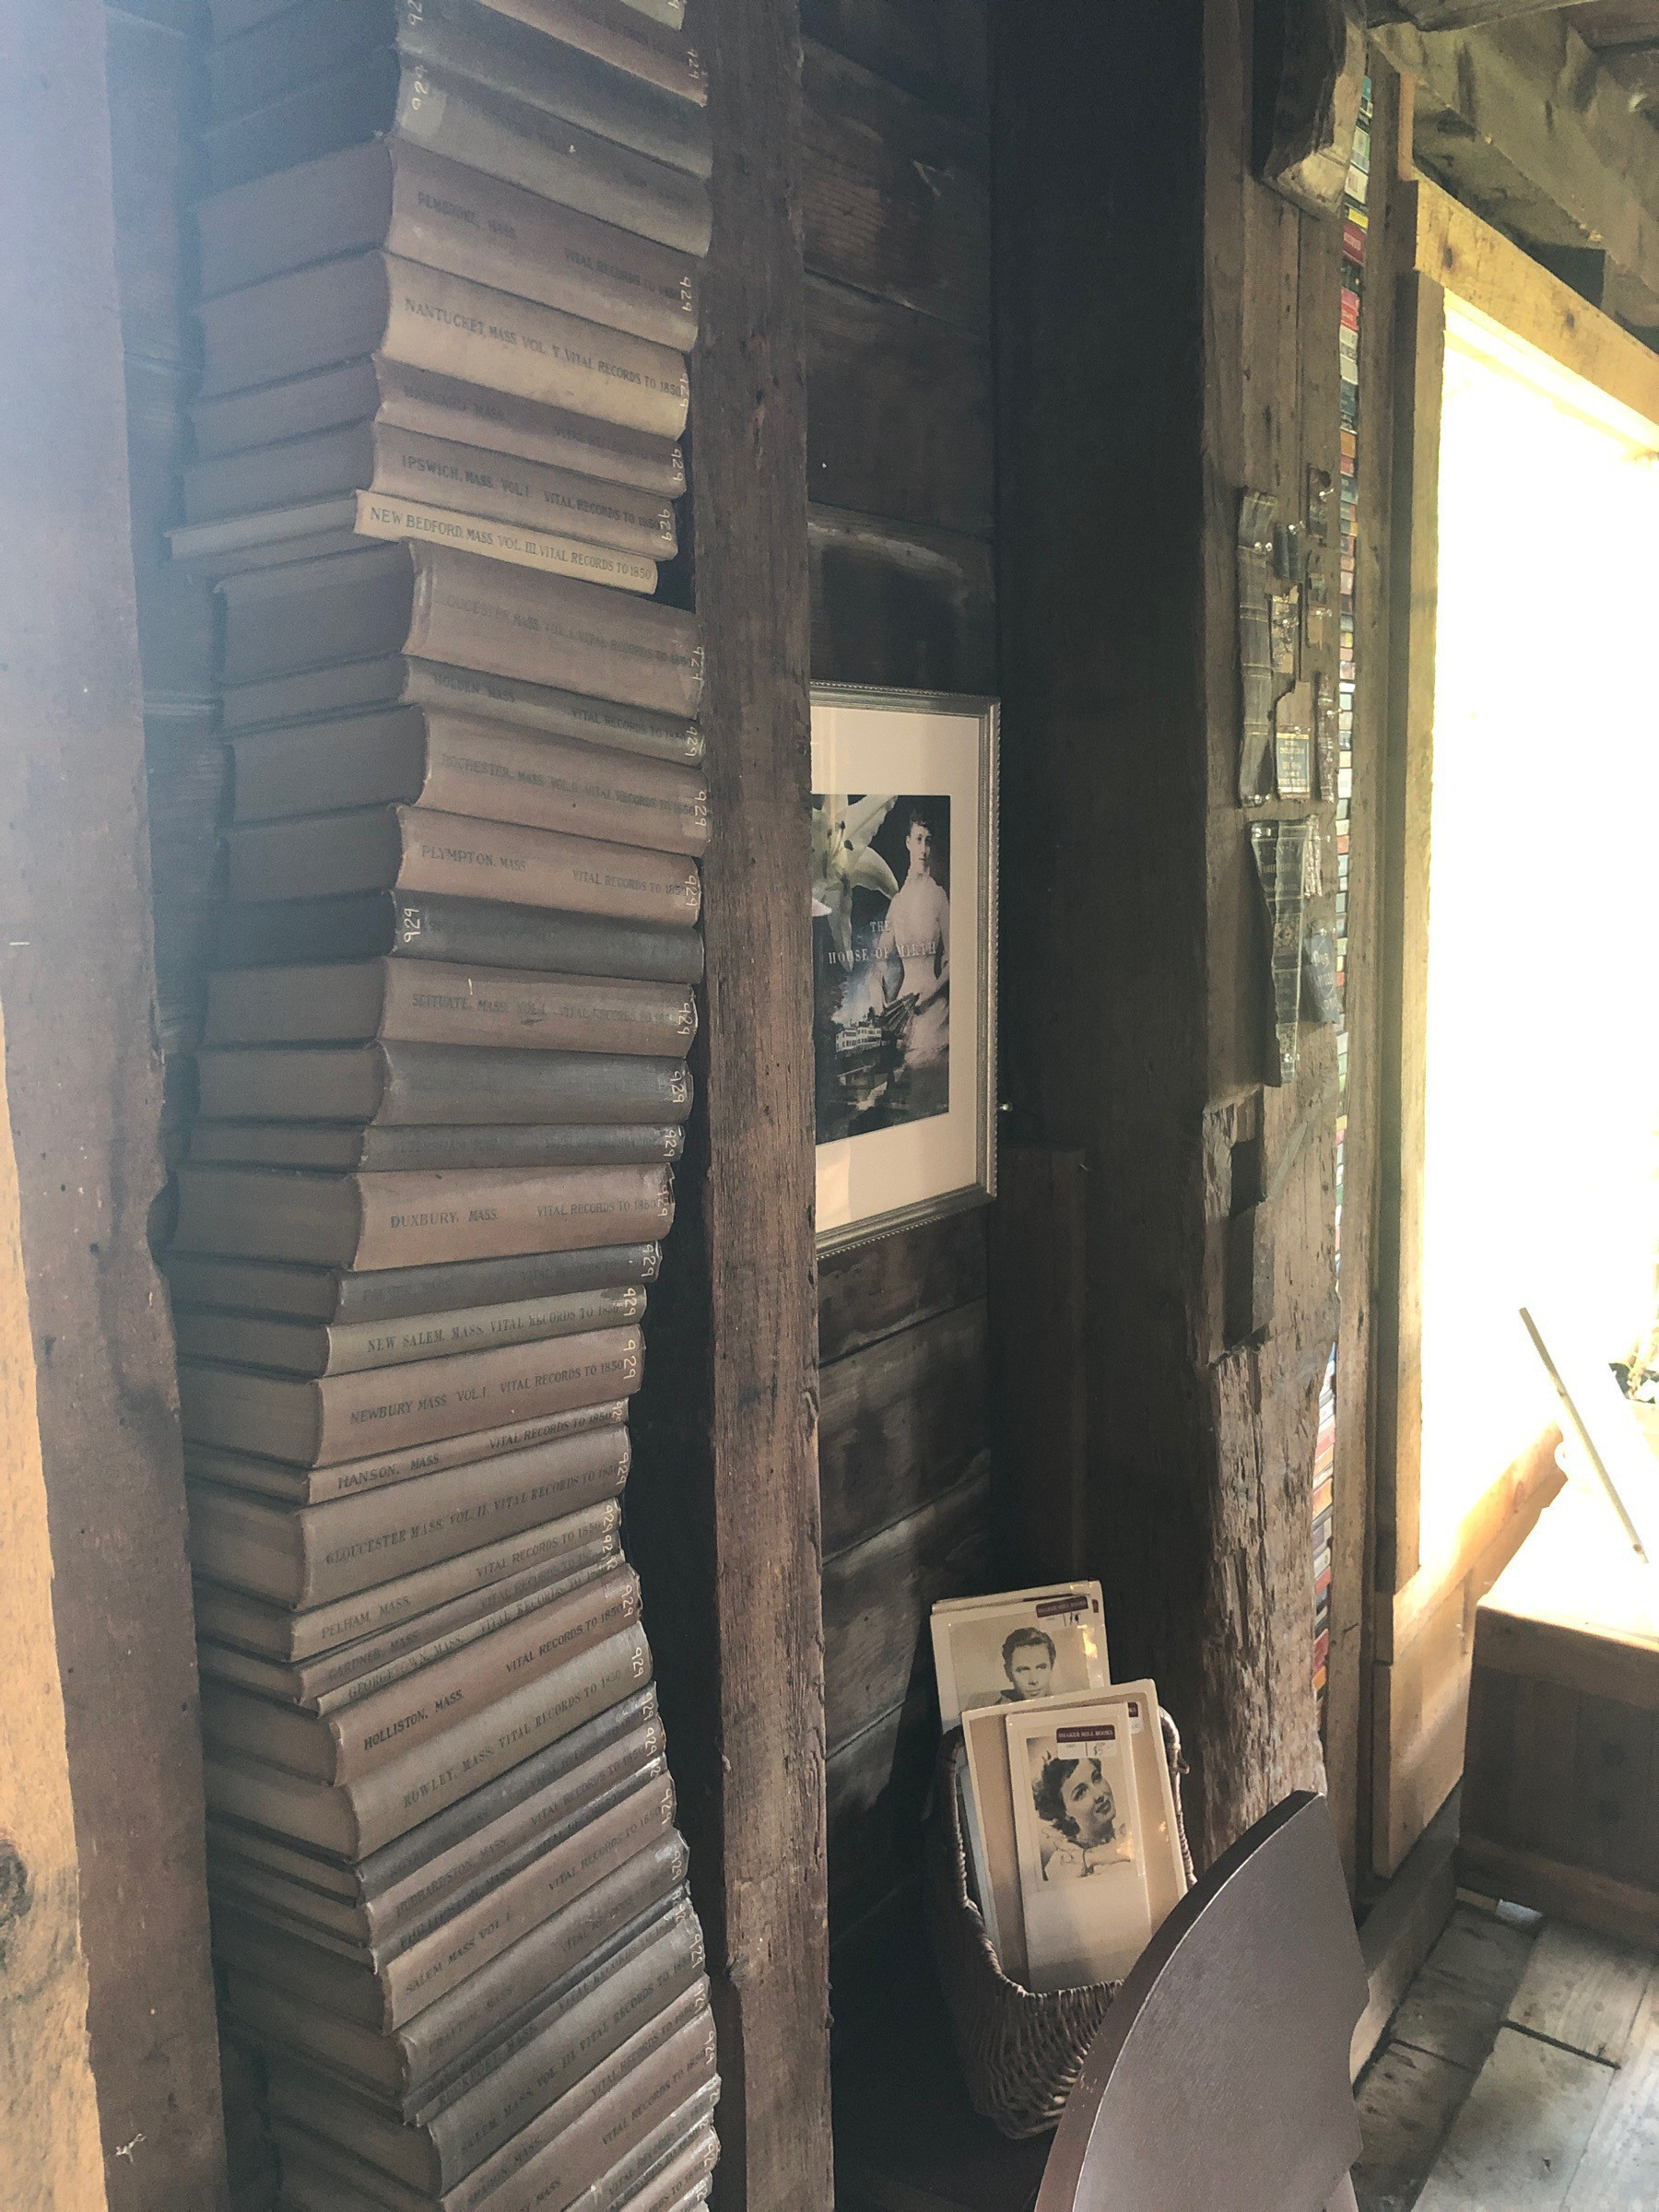 A tall stack of old books in a barn.